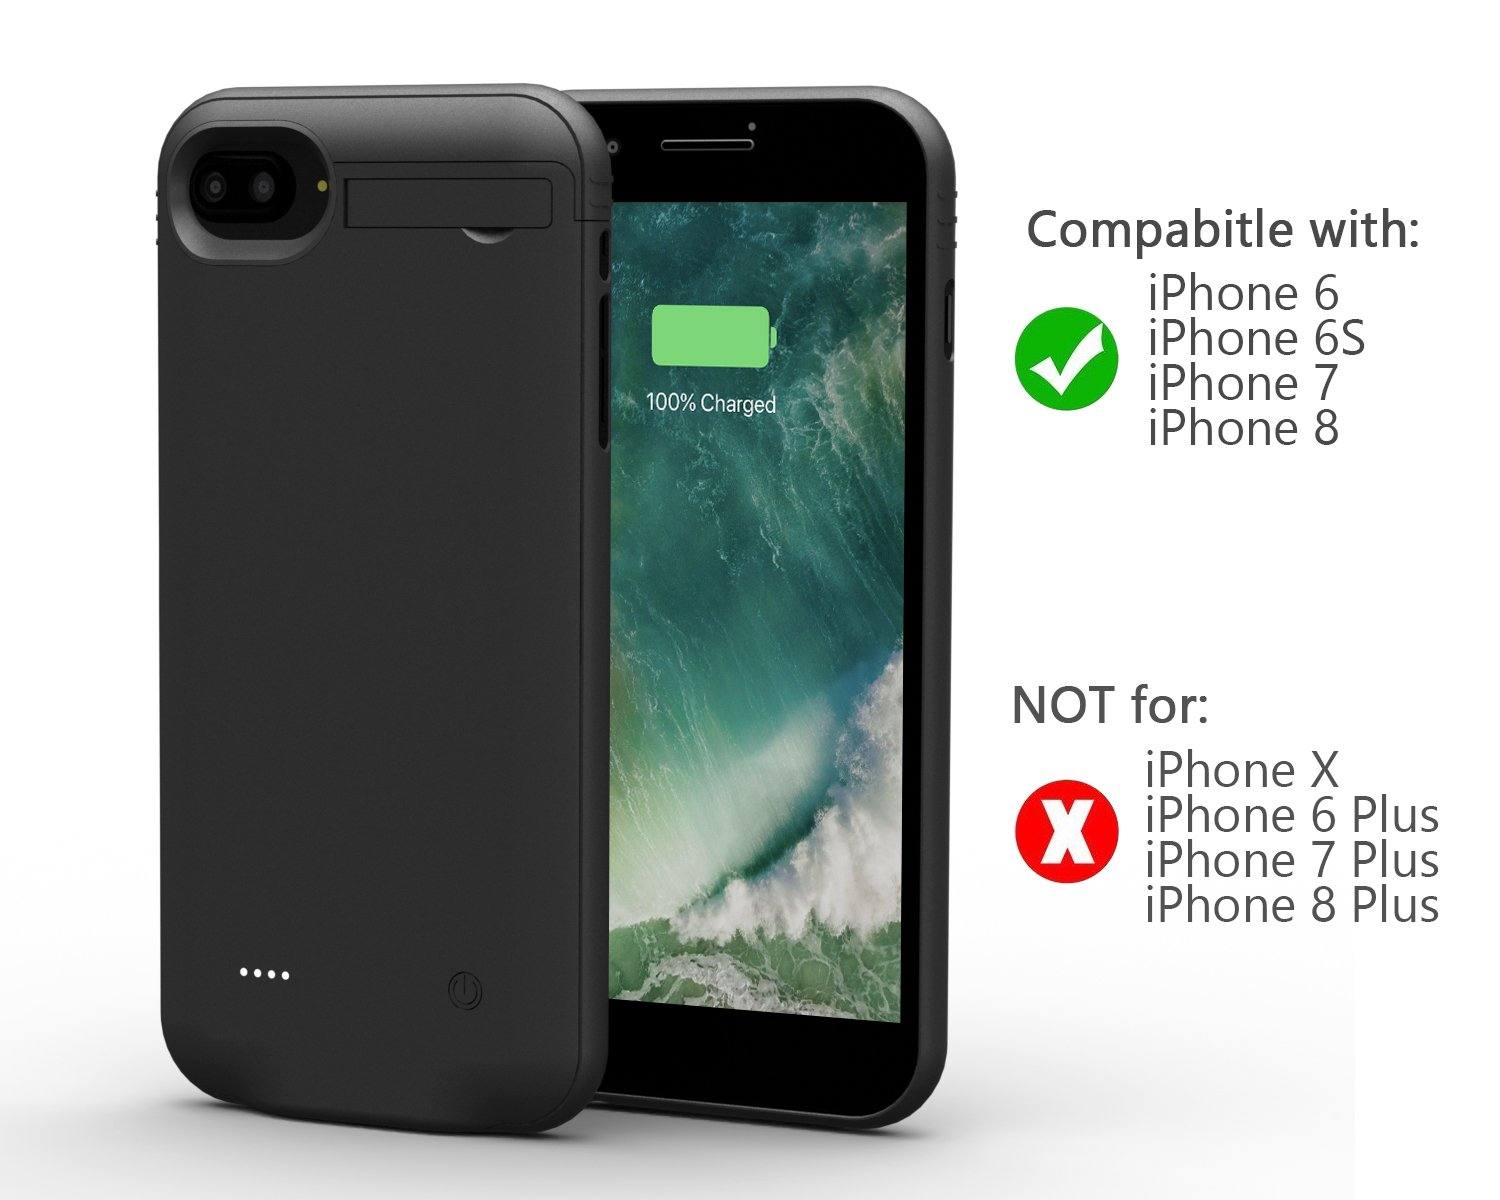 iPhone 8/7/6/6S Battery Case,Attom Tech Light-weight 3000mAh Ultra Slim Portable Charging Case Charger Audio/Data Sync for iPhone(4.7 inch) Extended Battery Bank Juice Pack/Lightning Cable Input Mode